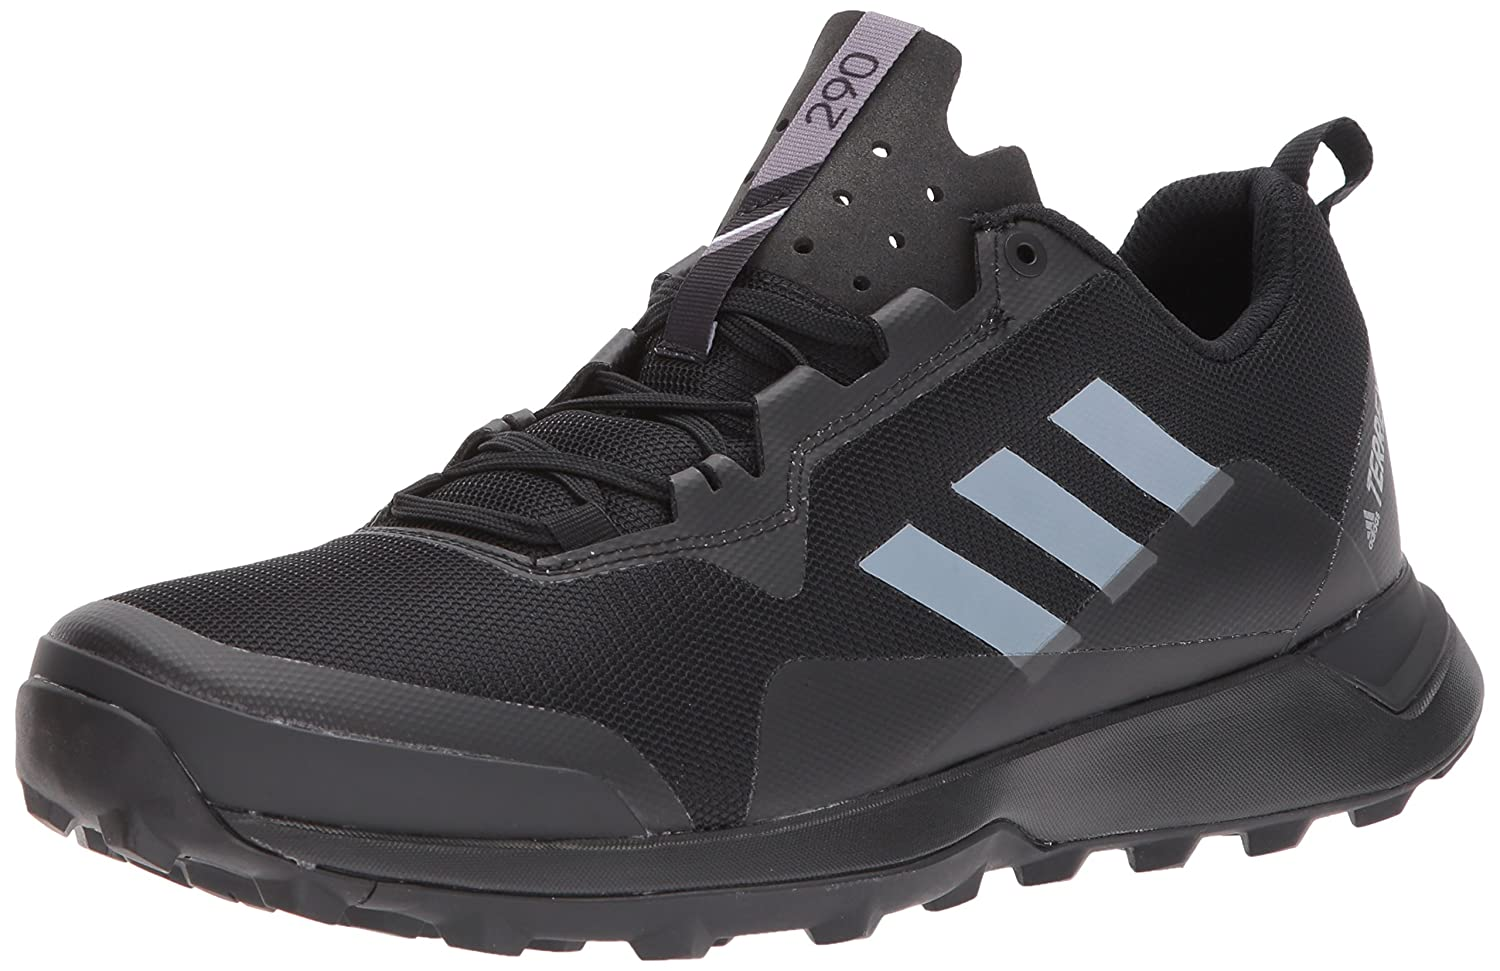 adidas Outdoor メンズ TERREX CMTK B01N0XKMIQ 11|Black/White/Grey Three Black/White/Grey Three 11